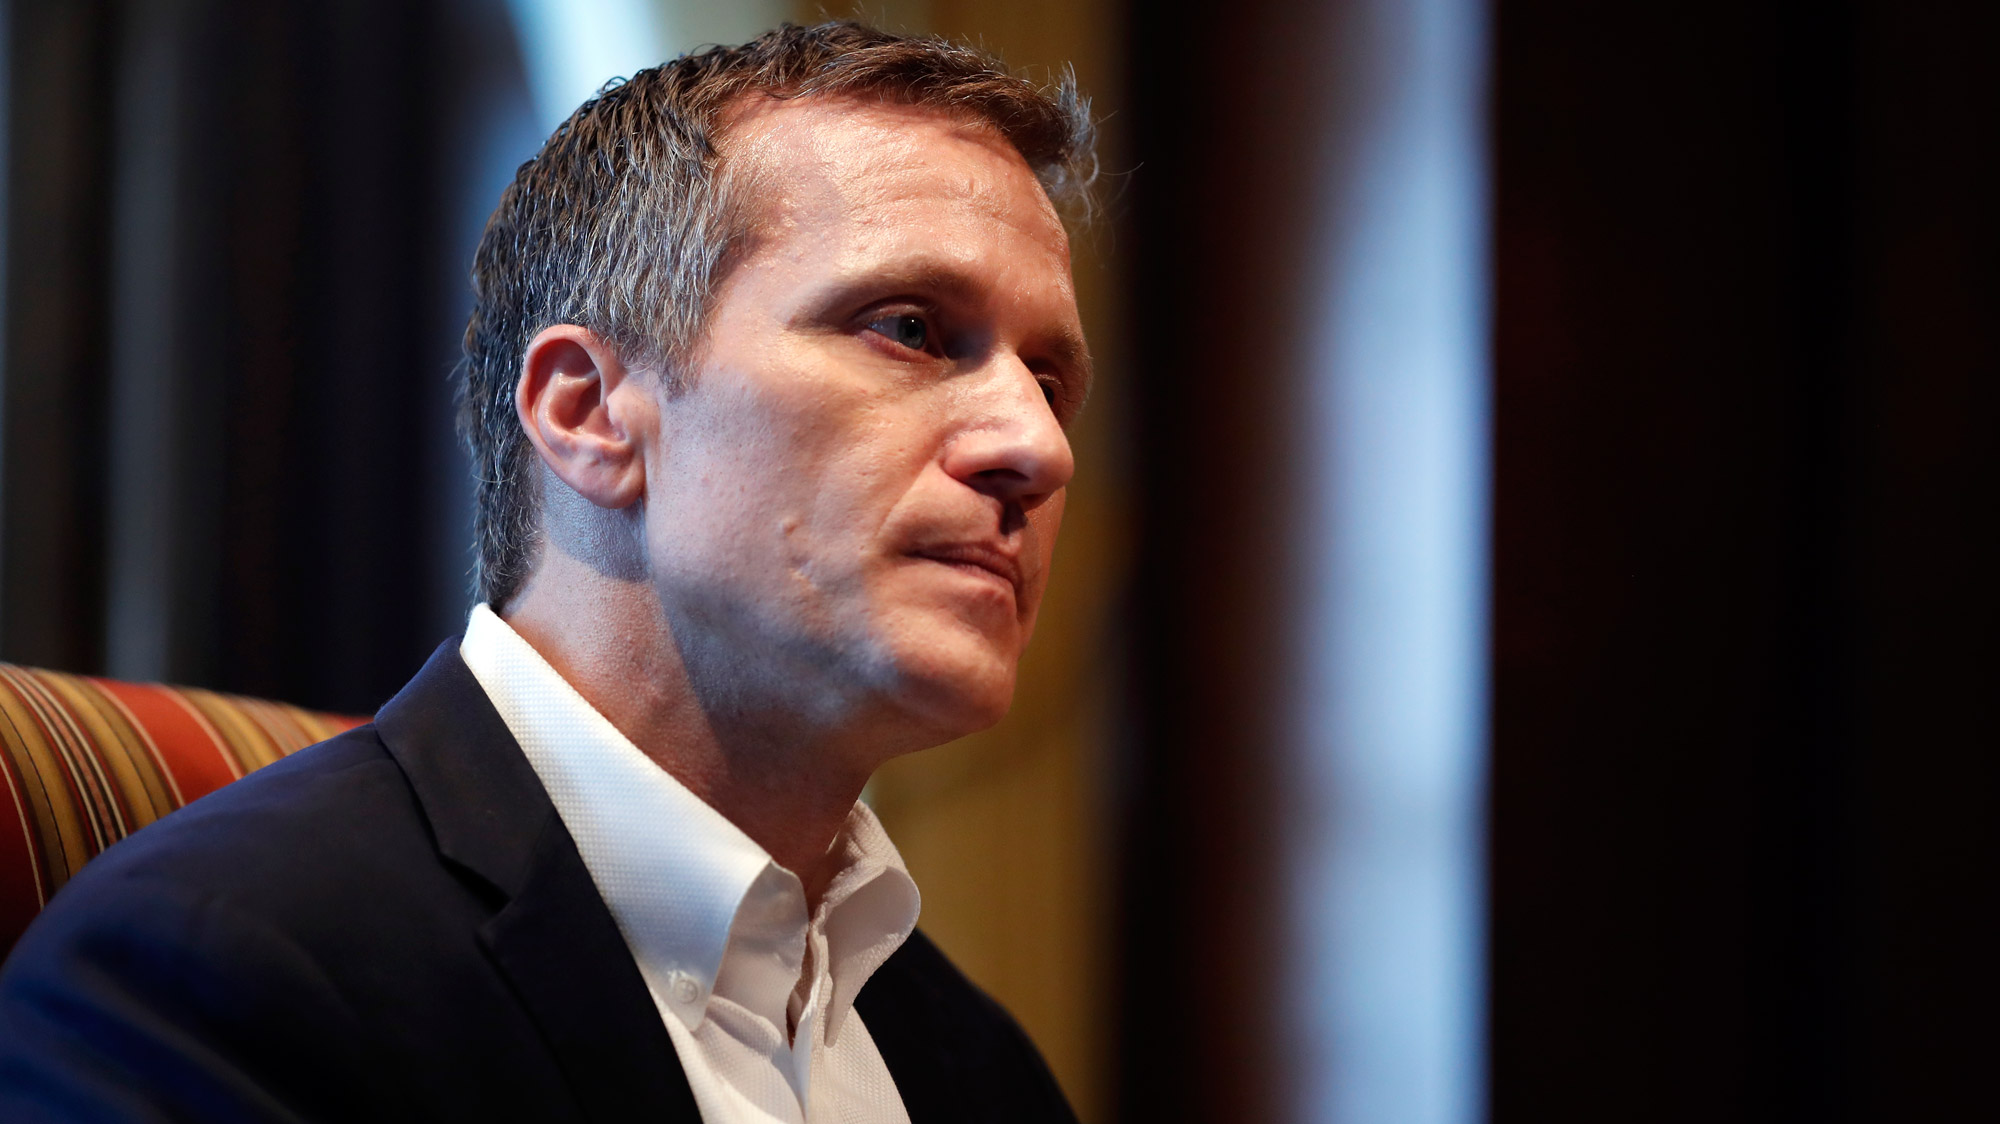 Missouri governor indicted on felony invasion of privacy charge stemming from affair